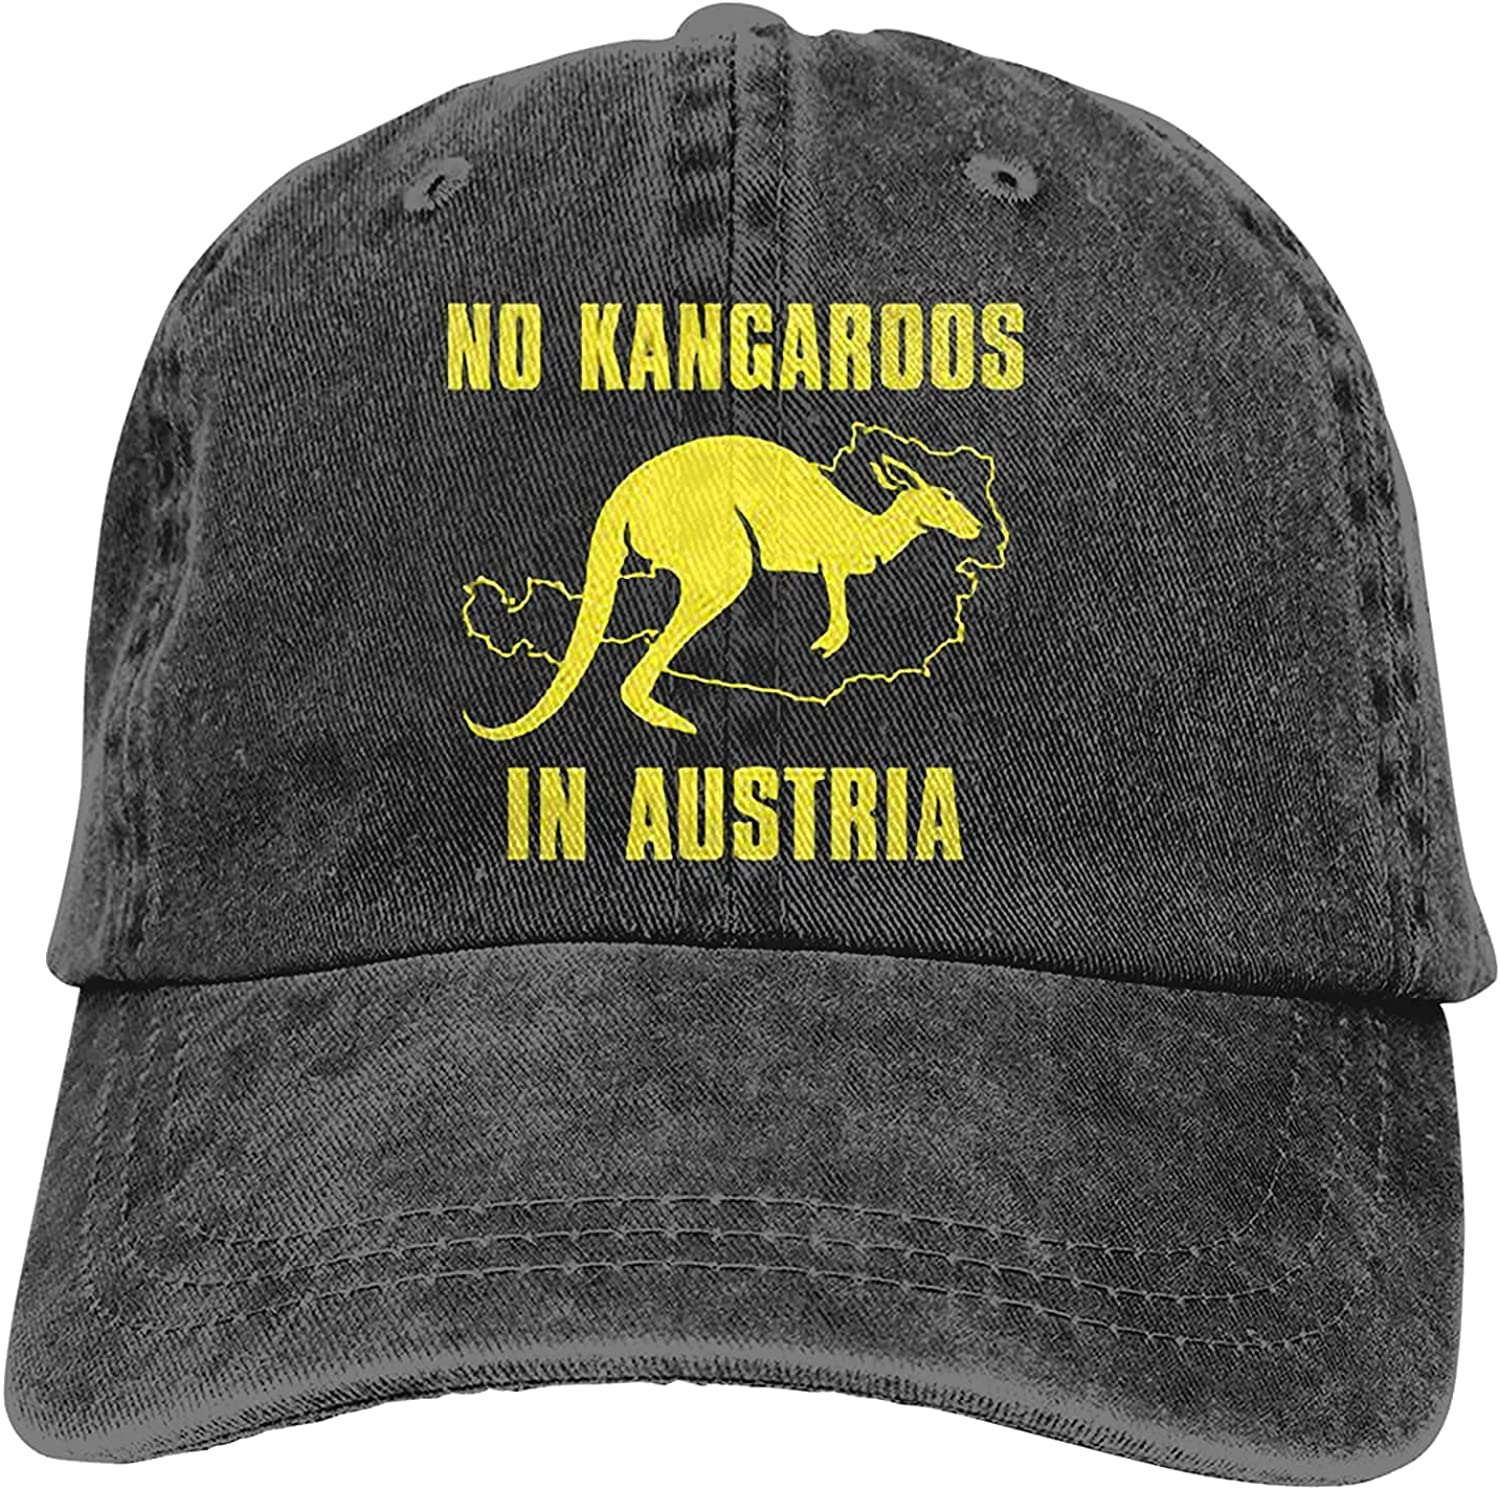 Max 69% OFF No Kangaroos in Austria Sports Hat Baseball Today's only Cap Trucker Washable